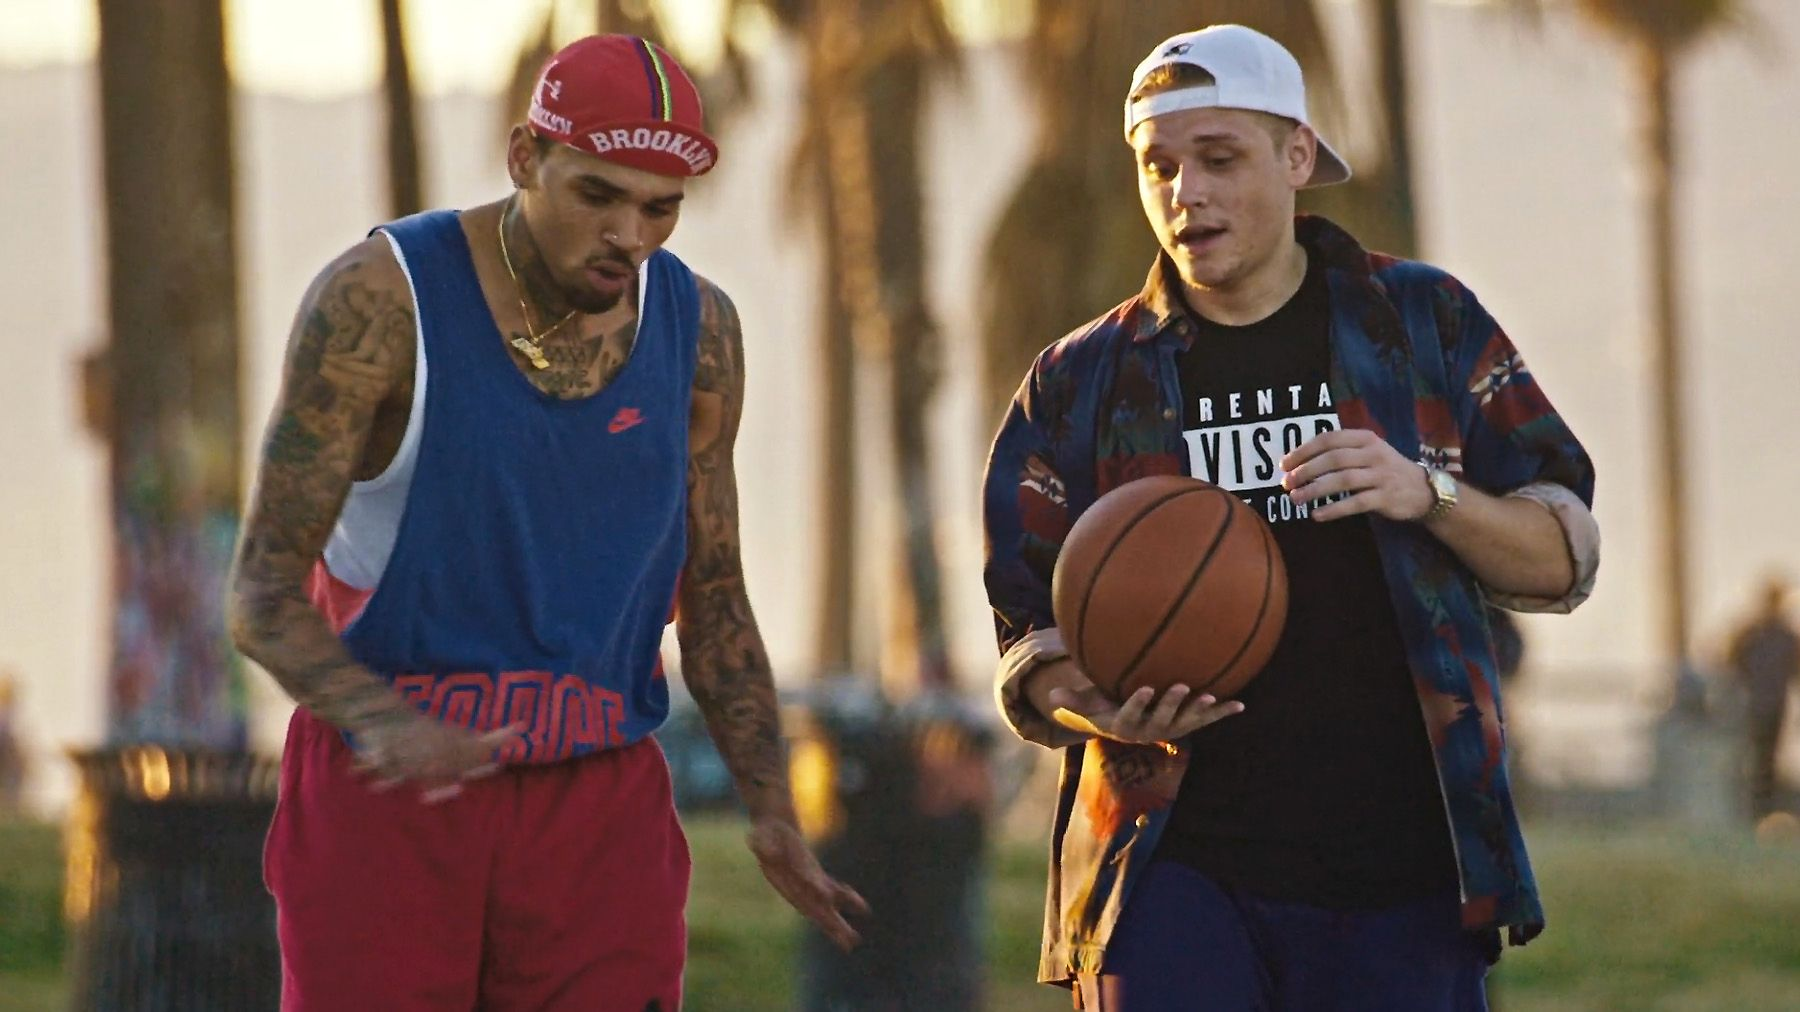 122915 music cal scruby and chris brown reenact white man can t jump video